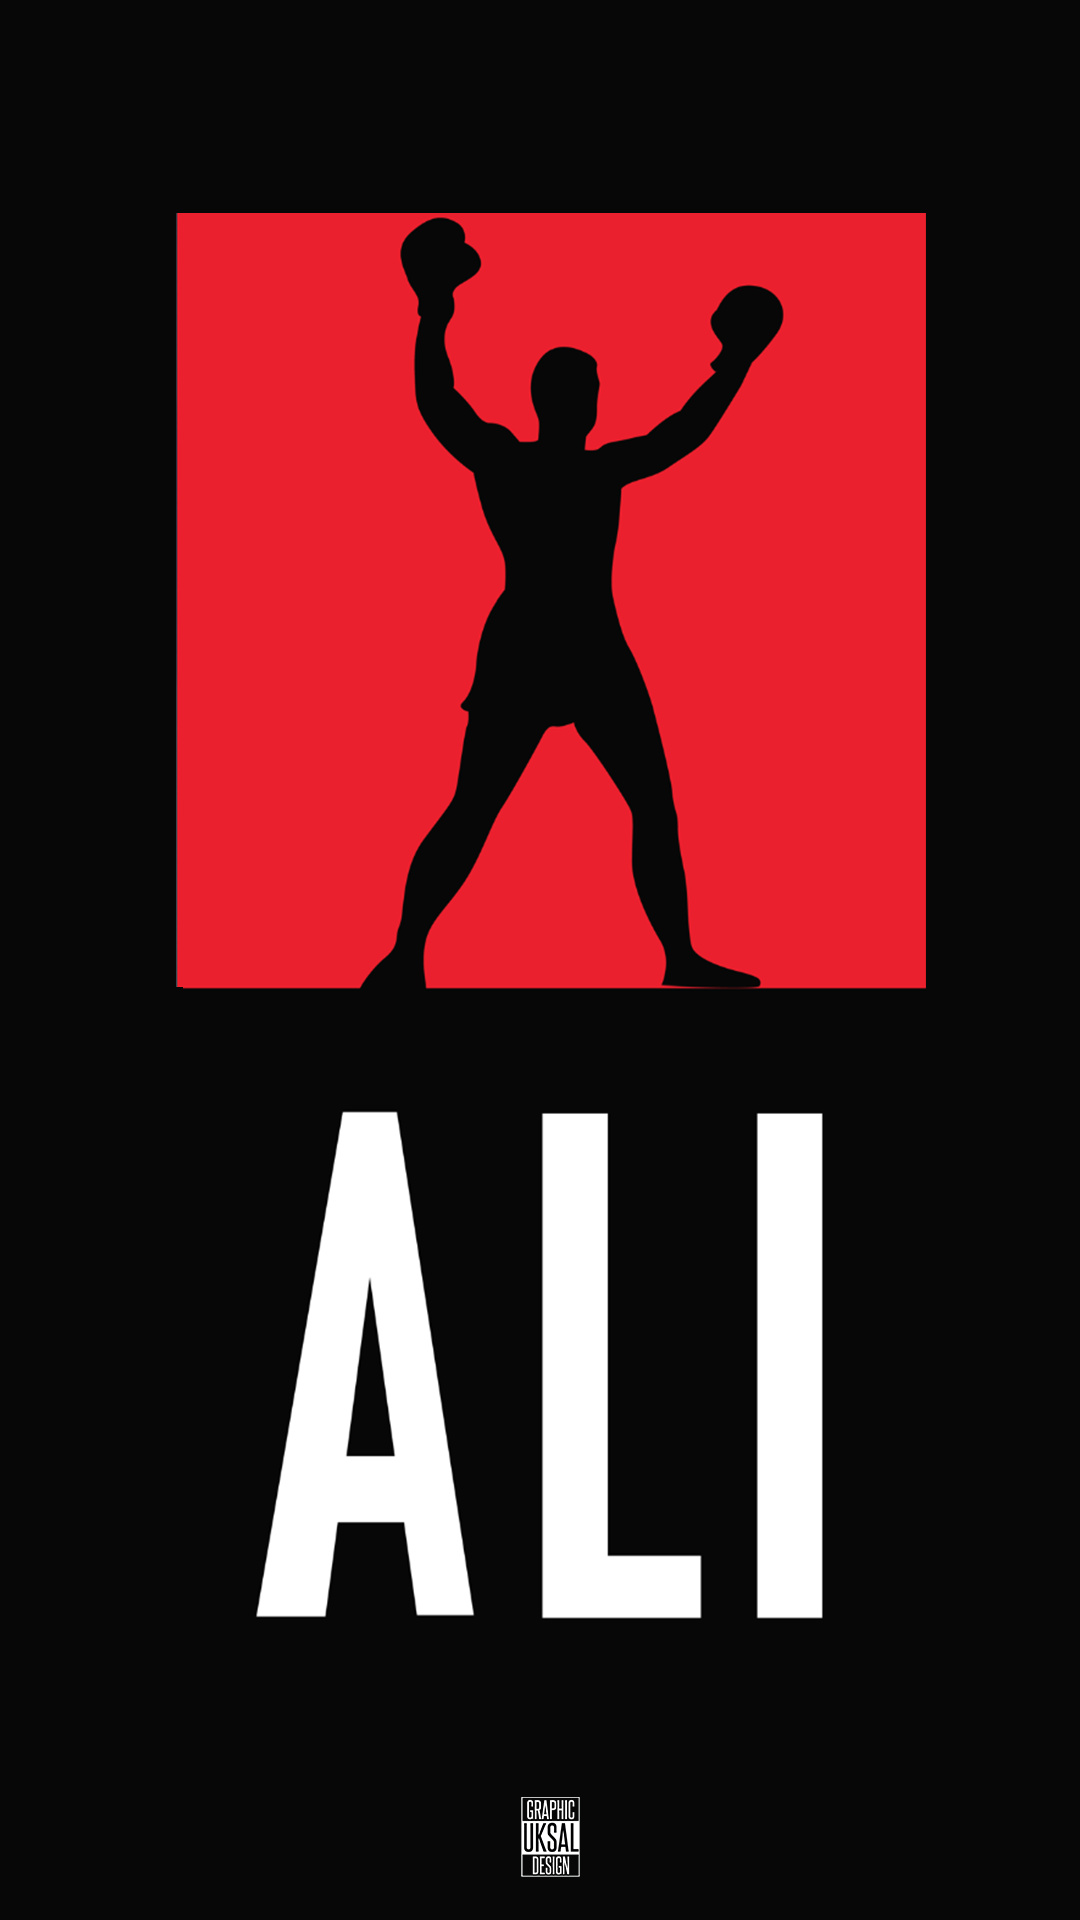 Silhouette Iphone Wallpaper Muhammad Ali Wallpaper For Iphone X 8 7 6 Free